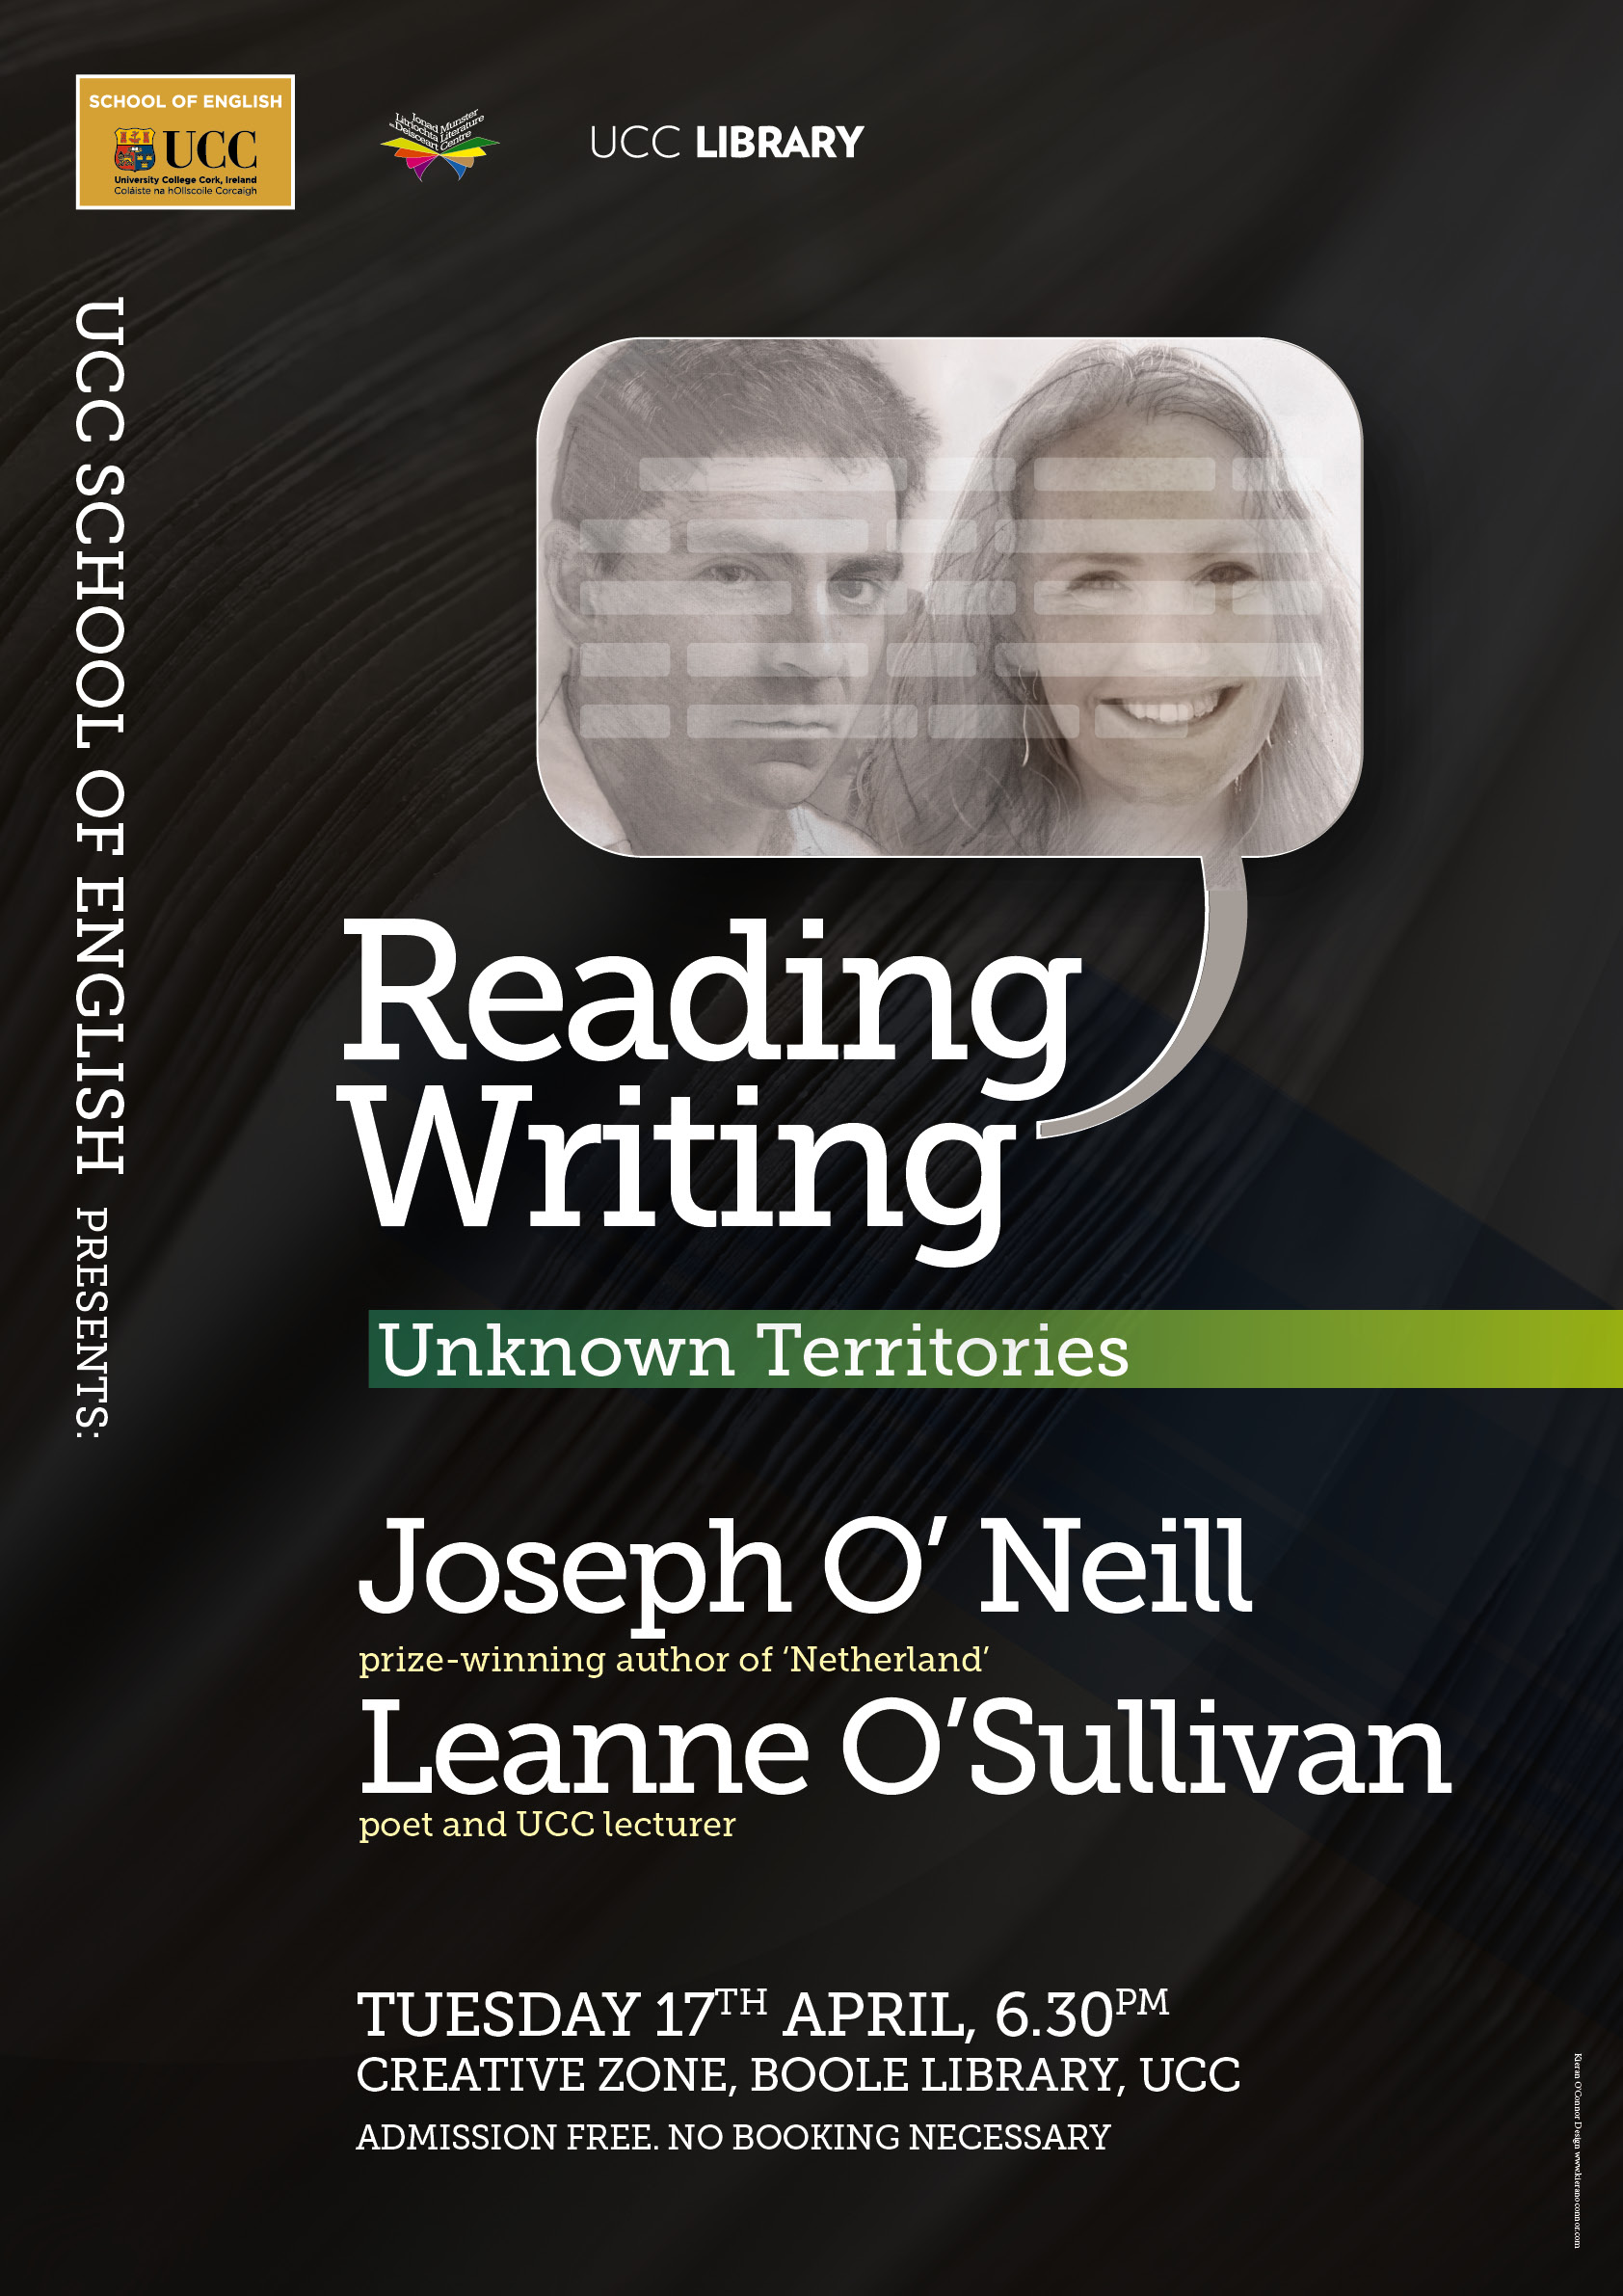 The final event in this year's School of English Reading Series takes place on Tuesday, April 17, and will feature Pen/Faulkner prize-winning author Joseph O'Neill and poet Leanne O'Sullivan, who is a valued member of  UCC's creative writing faculty.